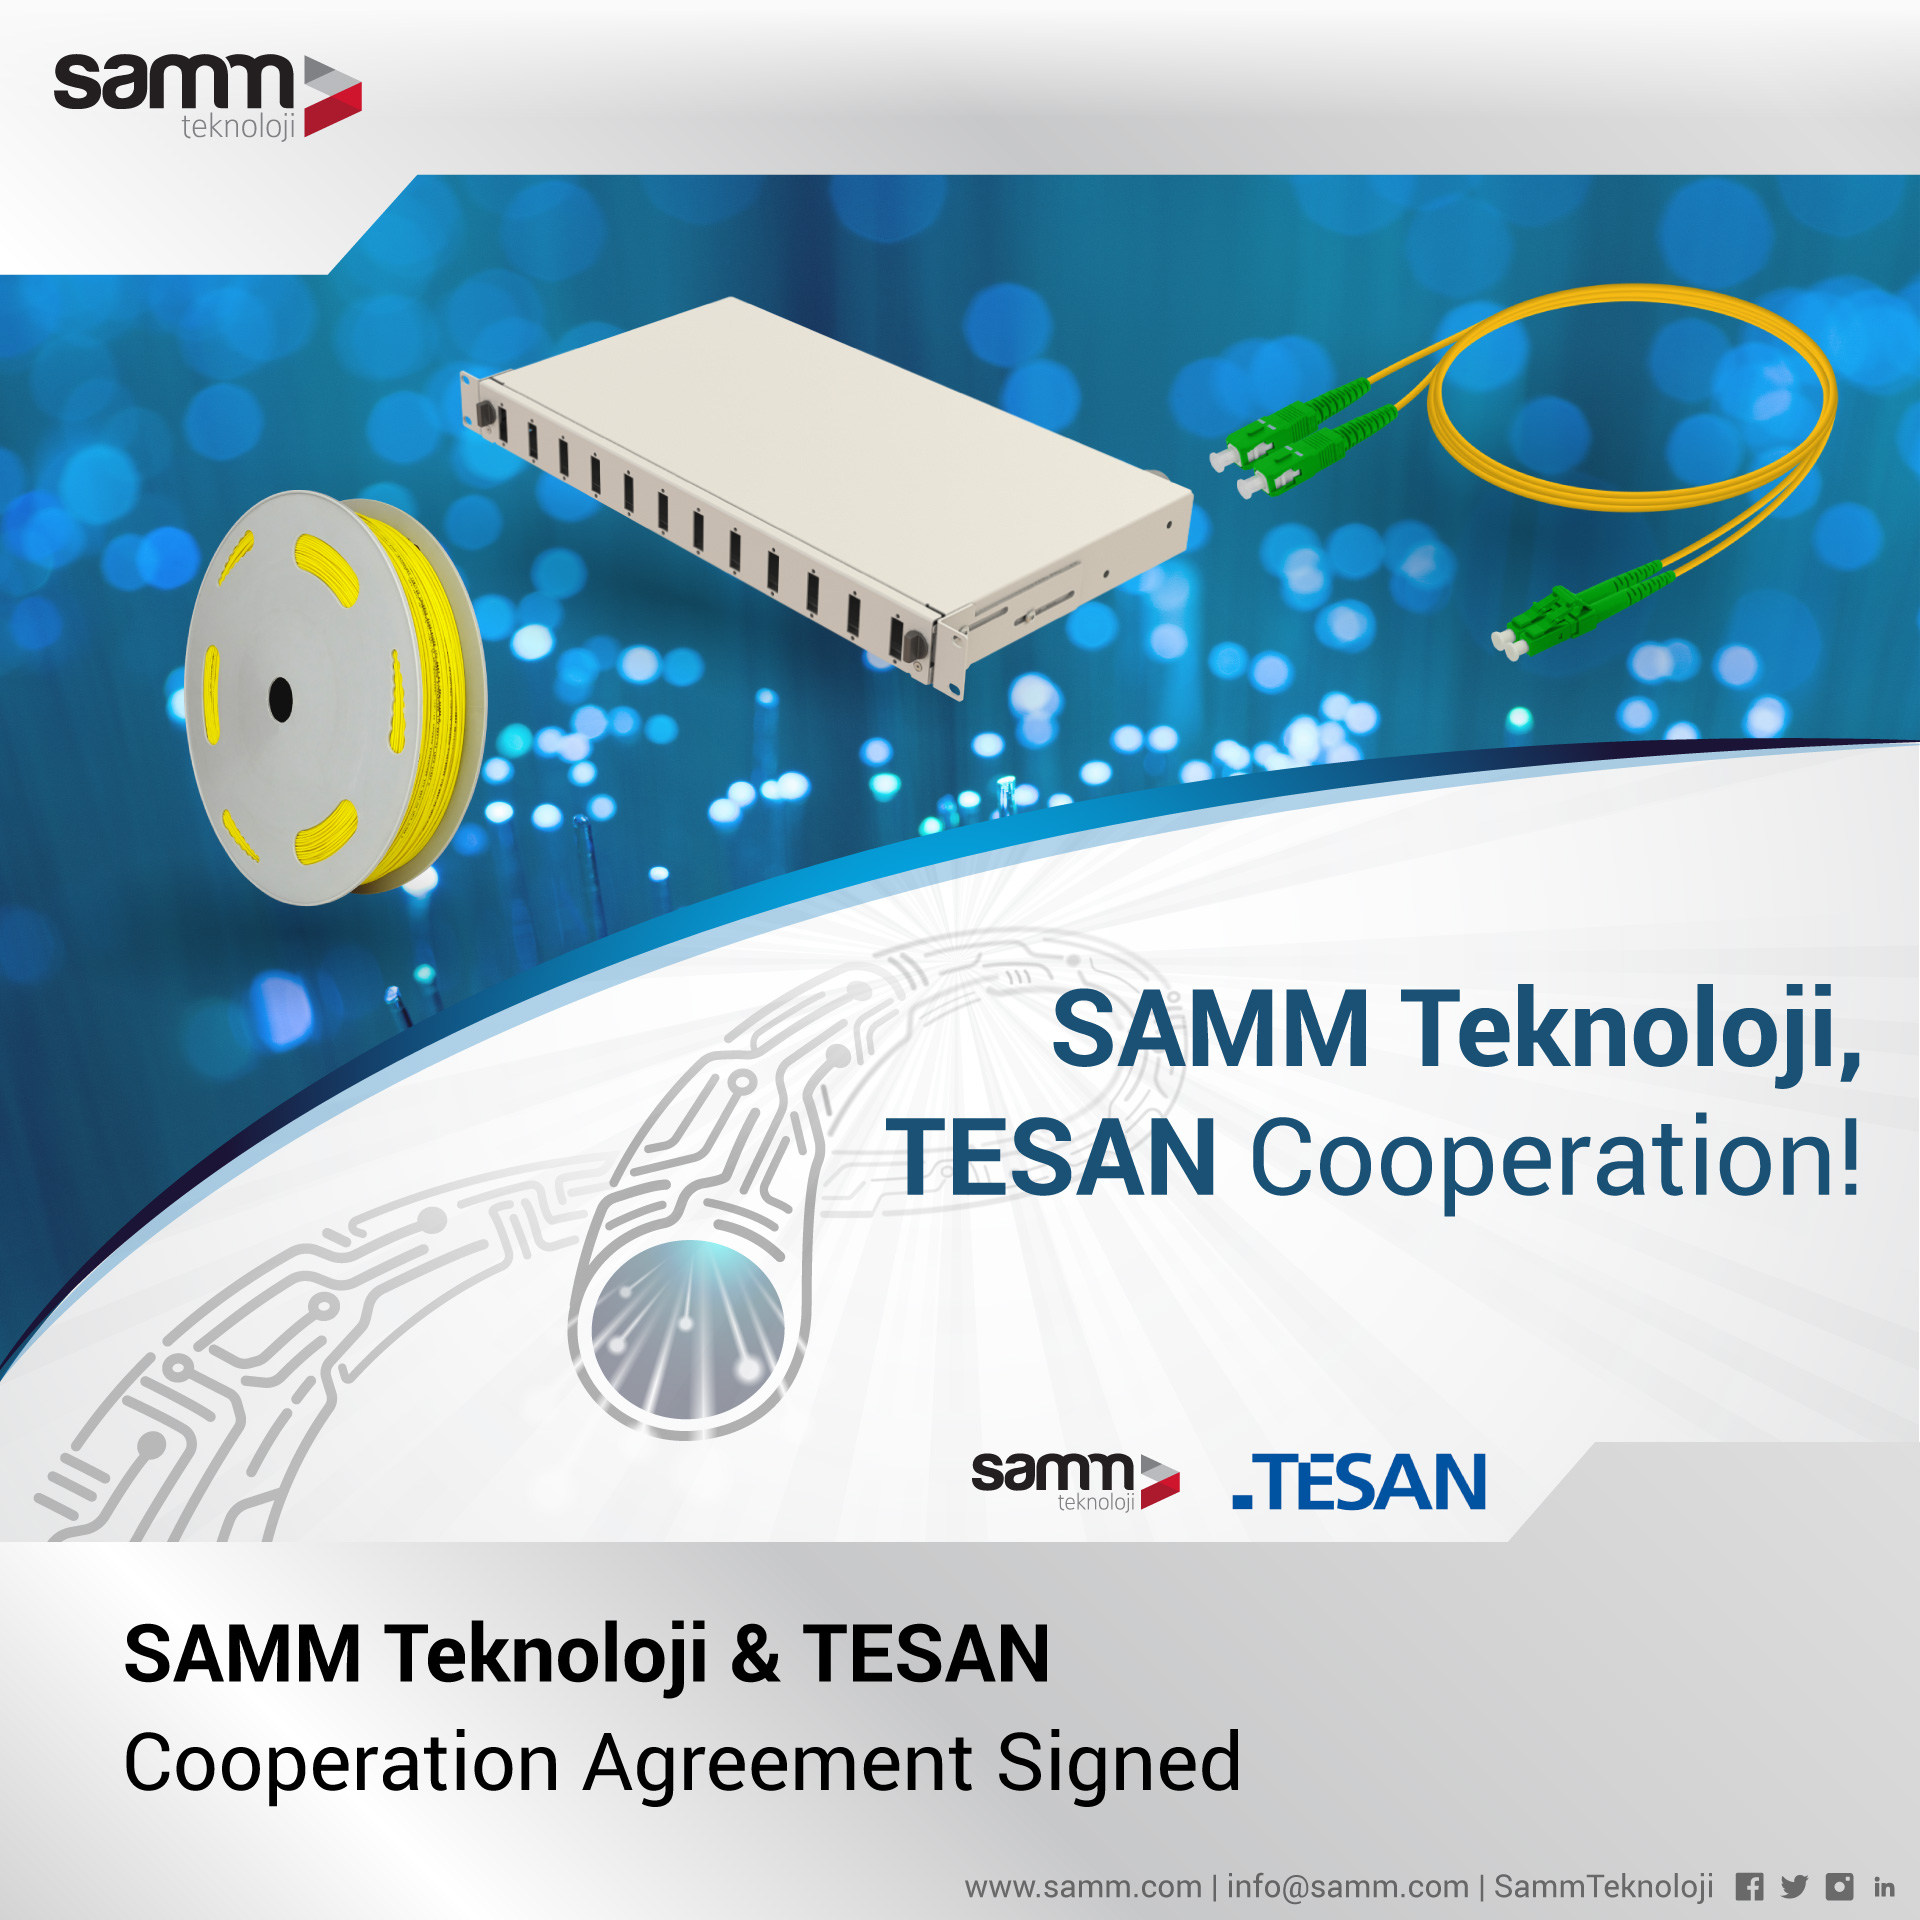 SAMM Teknoloji and TESAN Sign a Cooperation Agreement | Samm Teknoloji